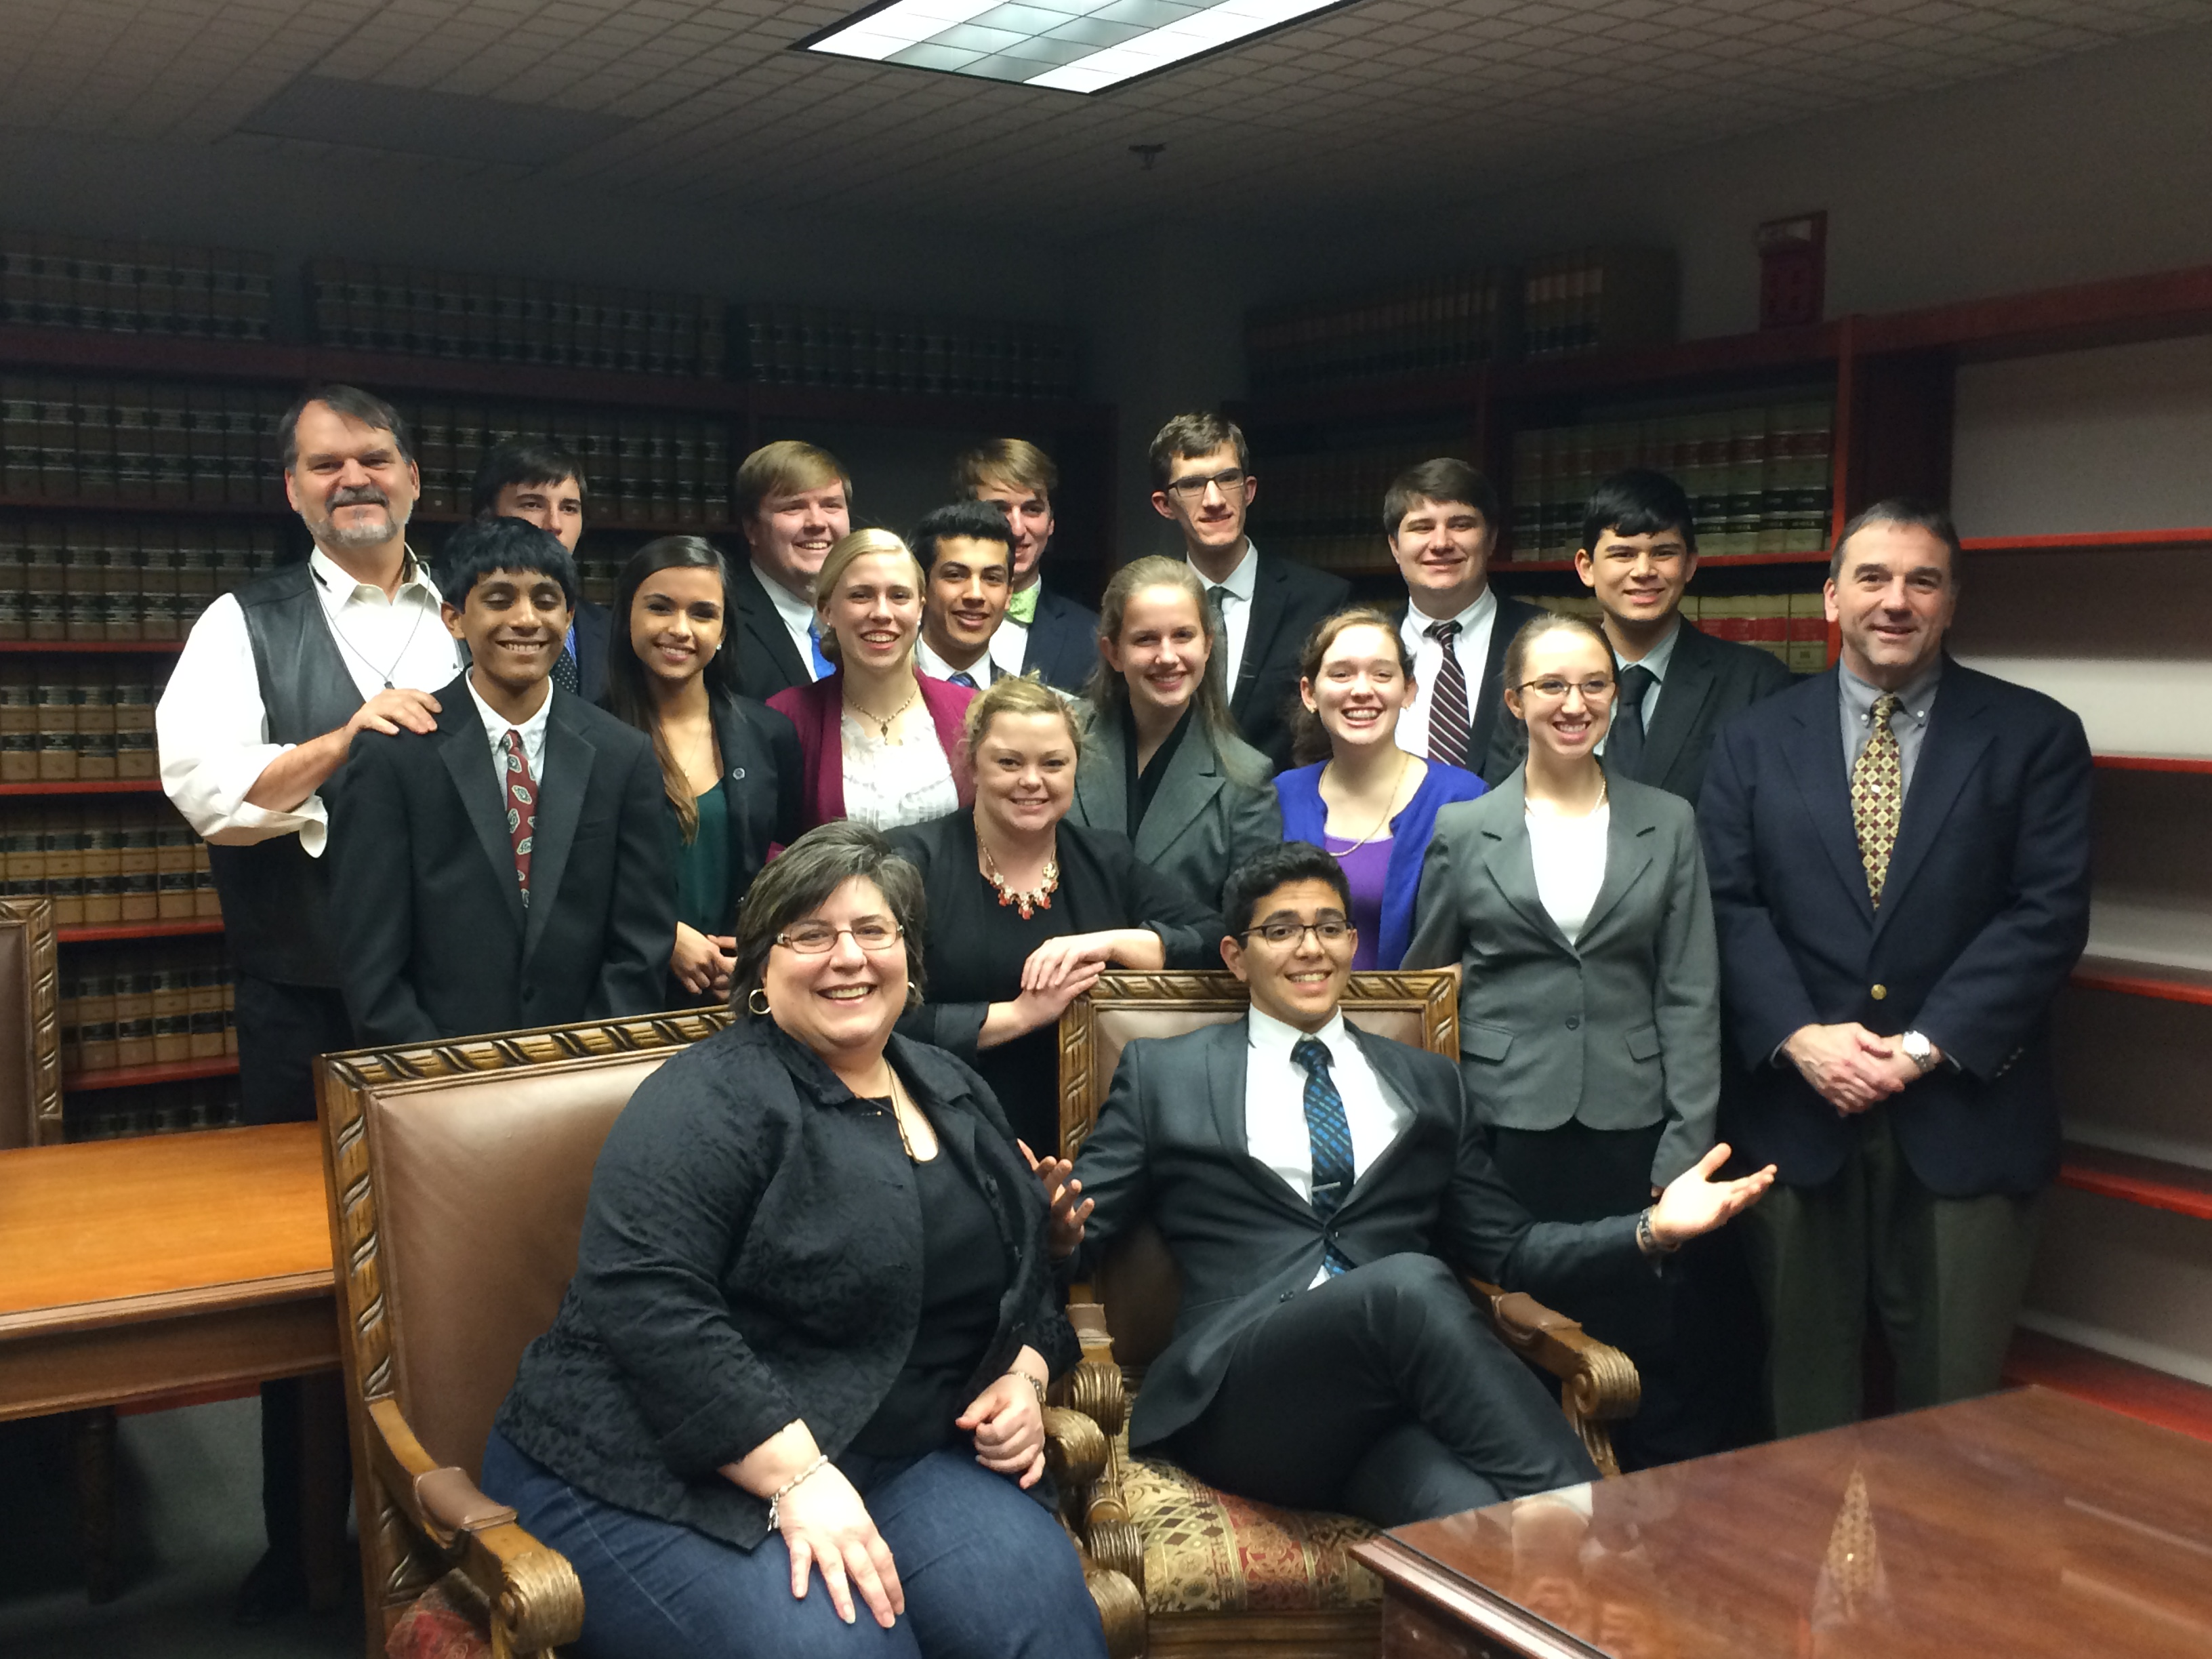 Pinecrest Academy Named Regional Champions by Mock Trial Judges